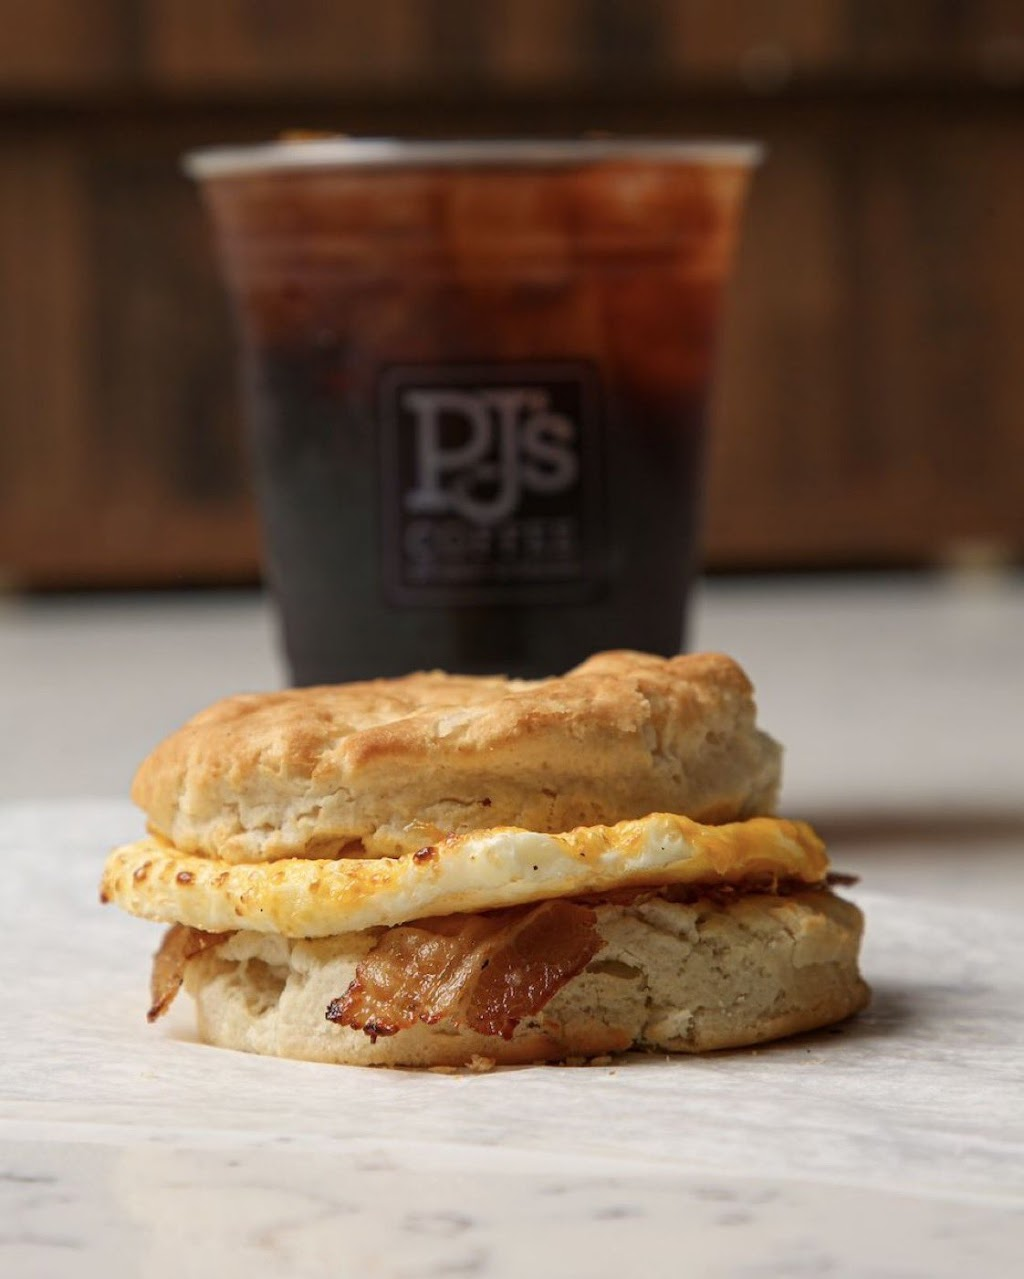 PJs Coffee of New Orleans - Northlake - cafe  | Photo 9 of 10 | Address: 4901 TX-114 Suite 101, Northlake, TX 76262, USA | Phone: (682) 502-4641